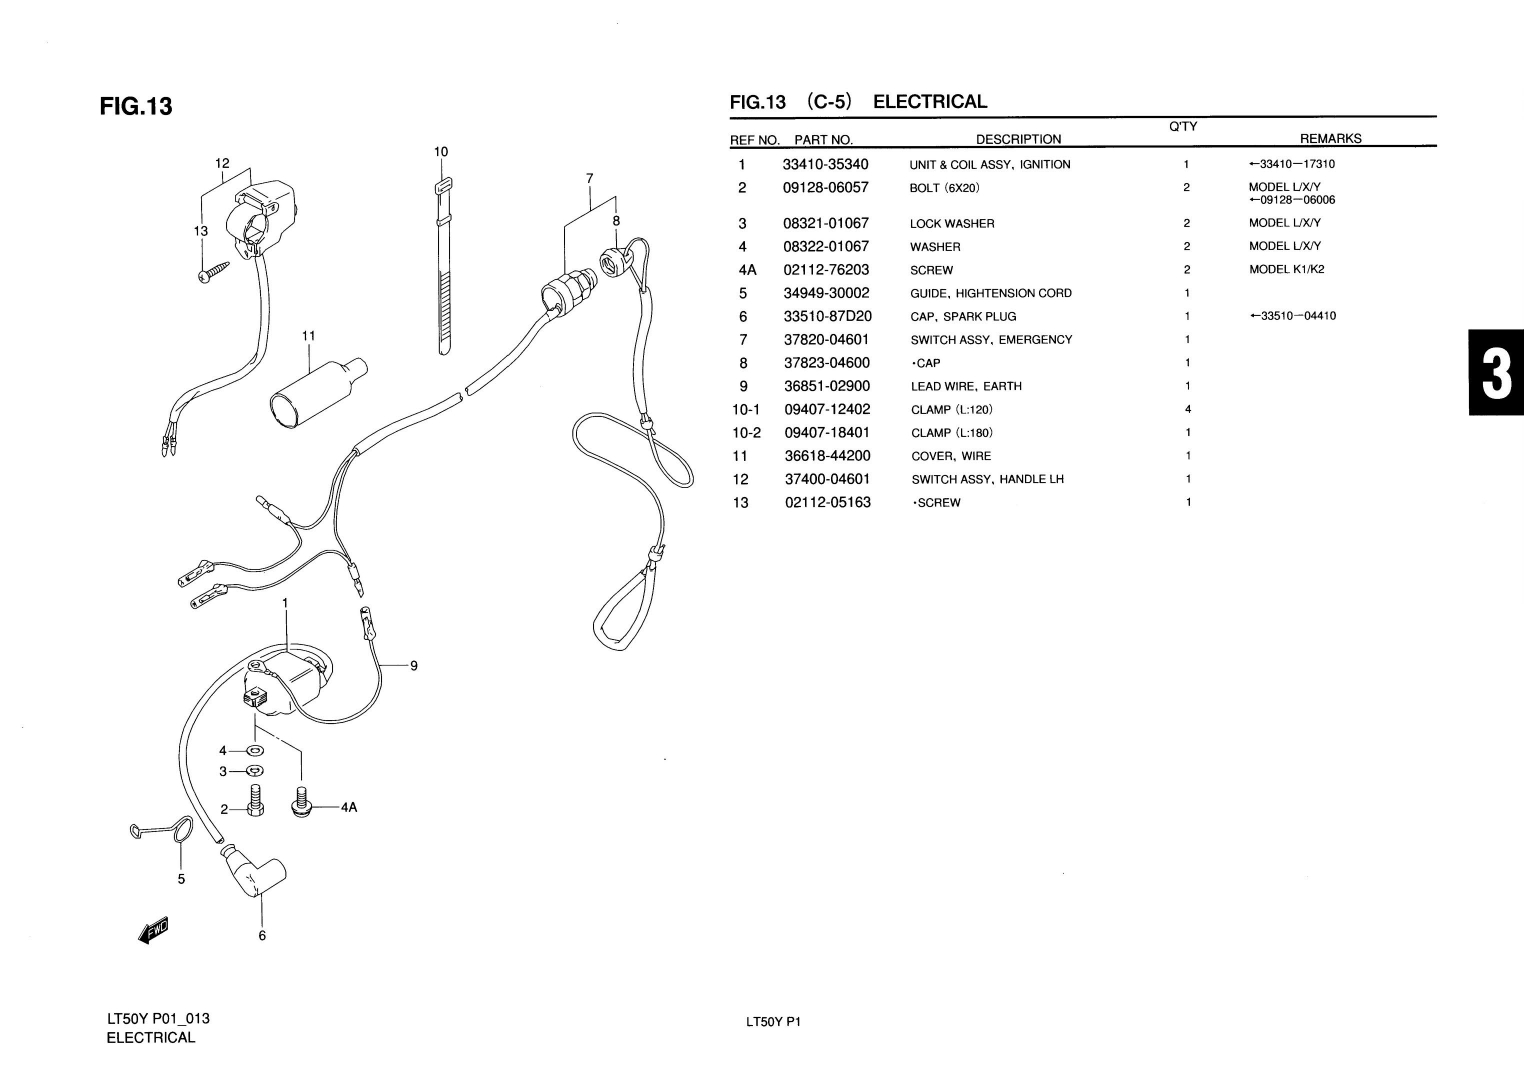 1974 Suzuki Ts185 Wiring Diagram Electrical Diagrams Rv90 Electric Schematic Gt750